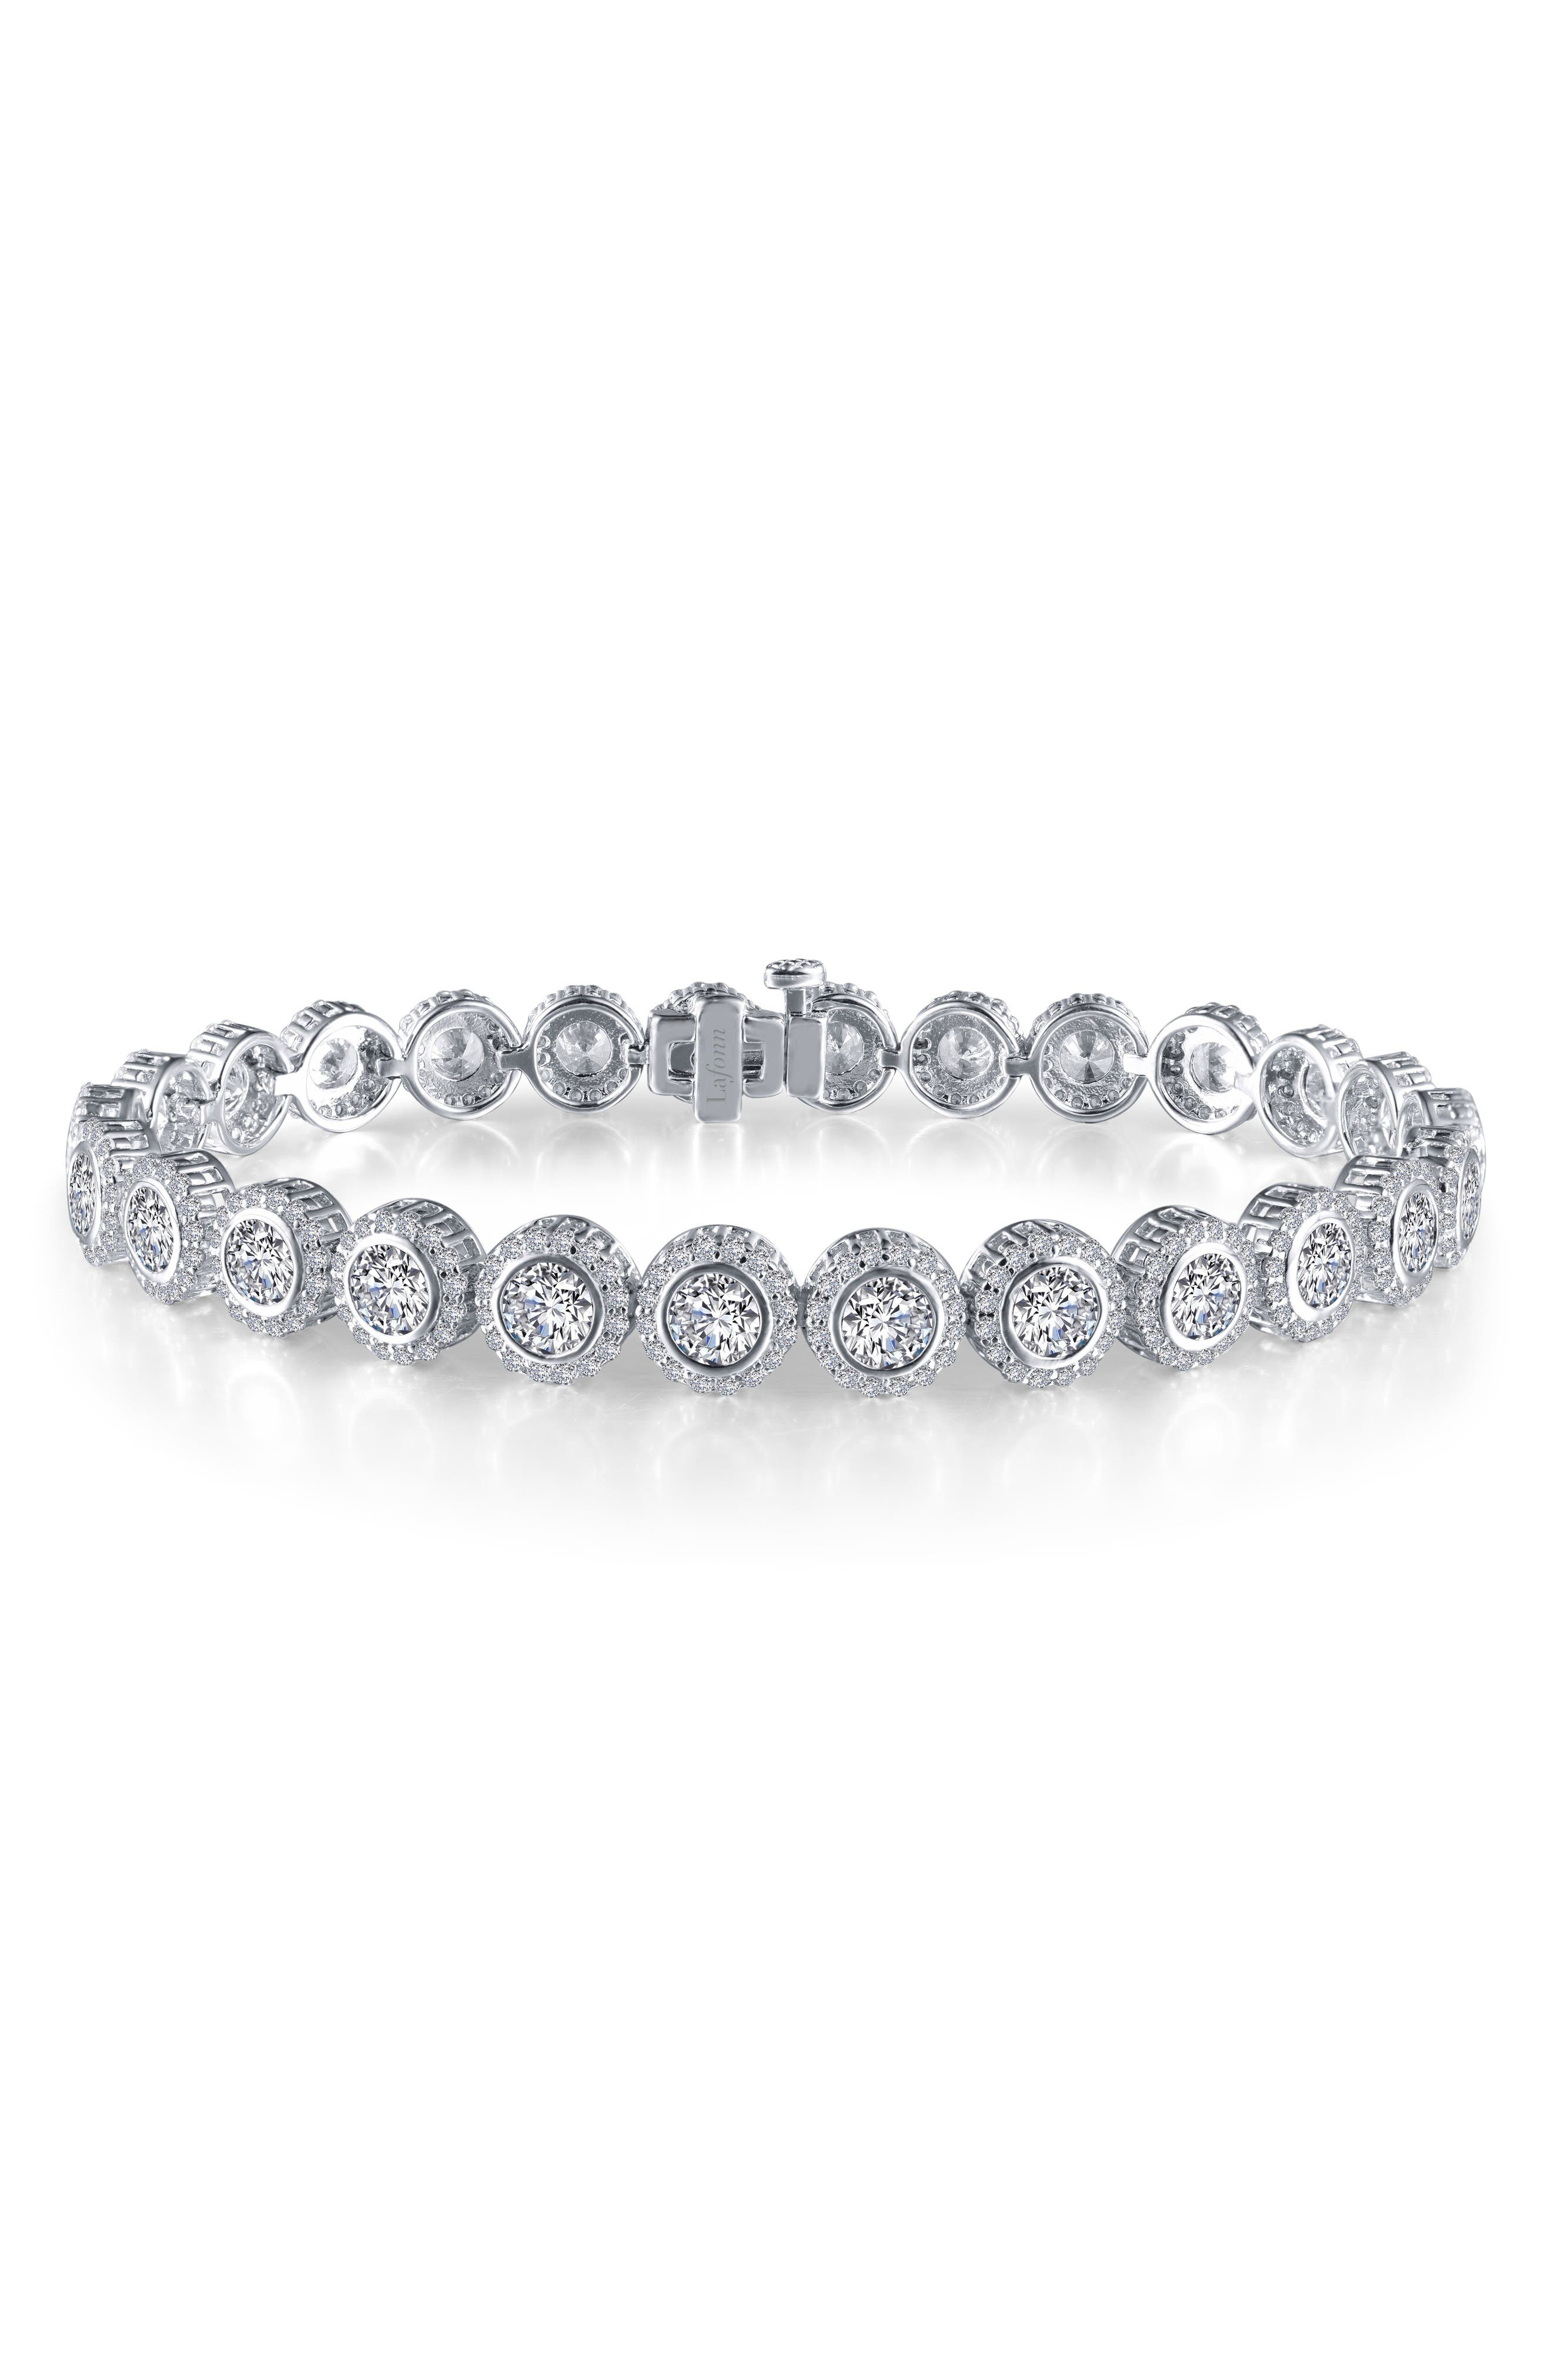 Main Image - Lafonn Halo Simulated Diamond Tennis Bracelet